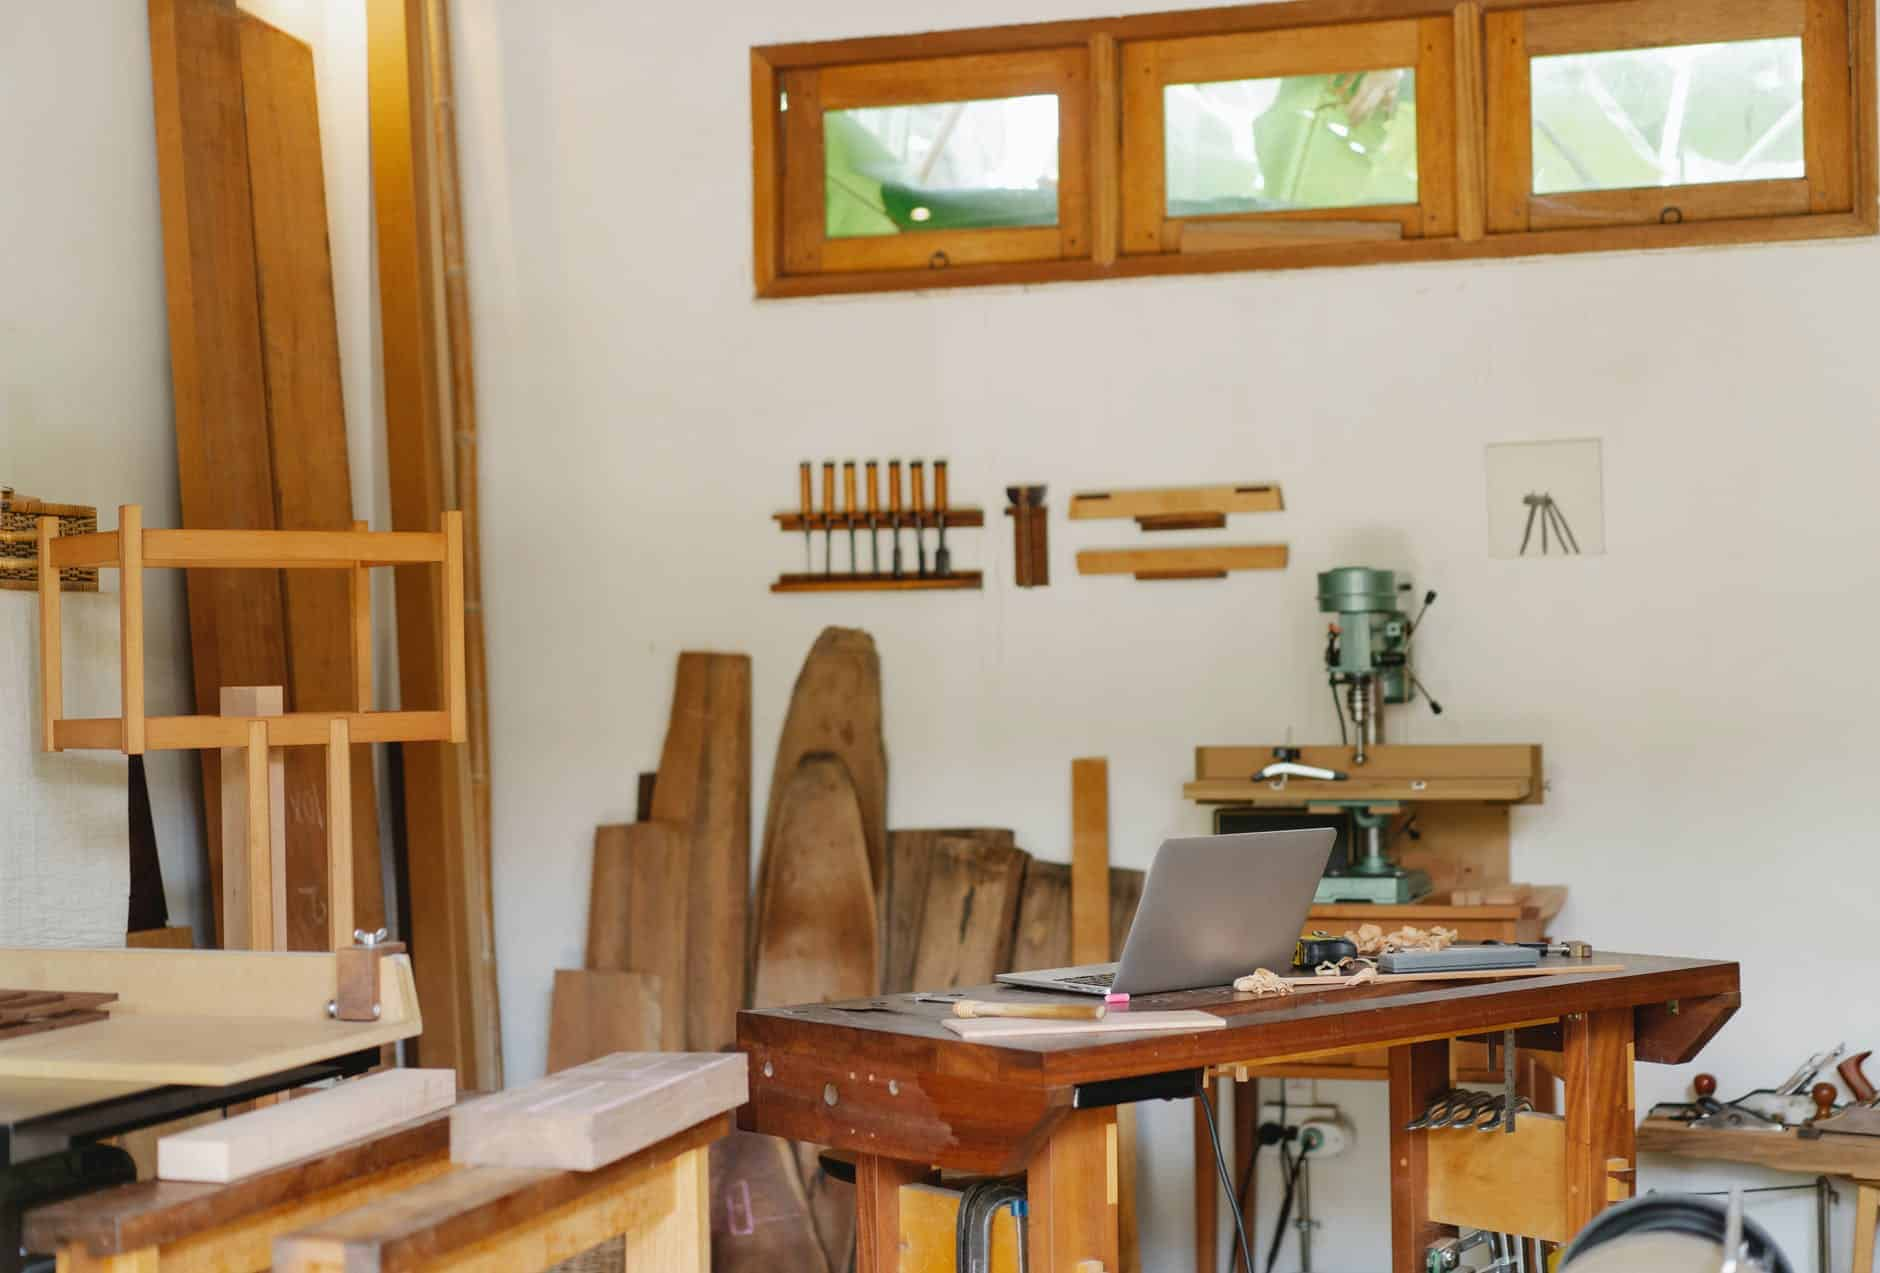 room filled of woodworking tools